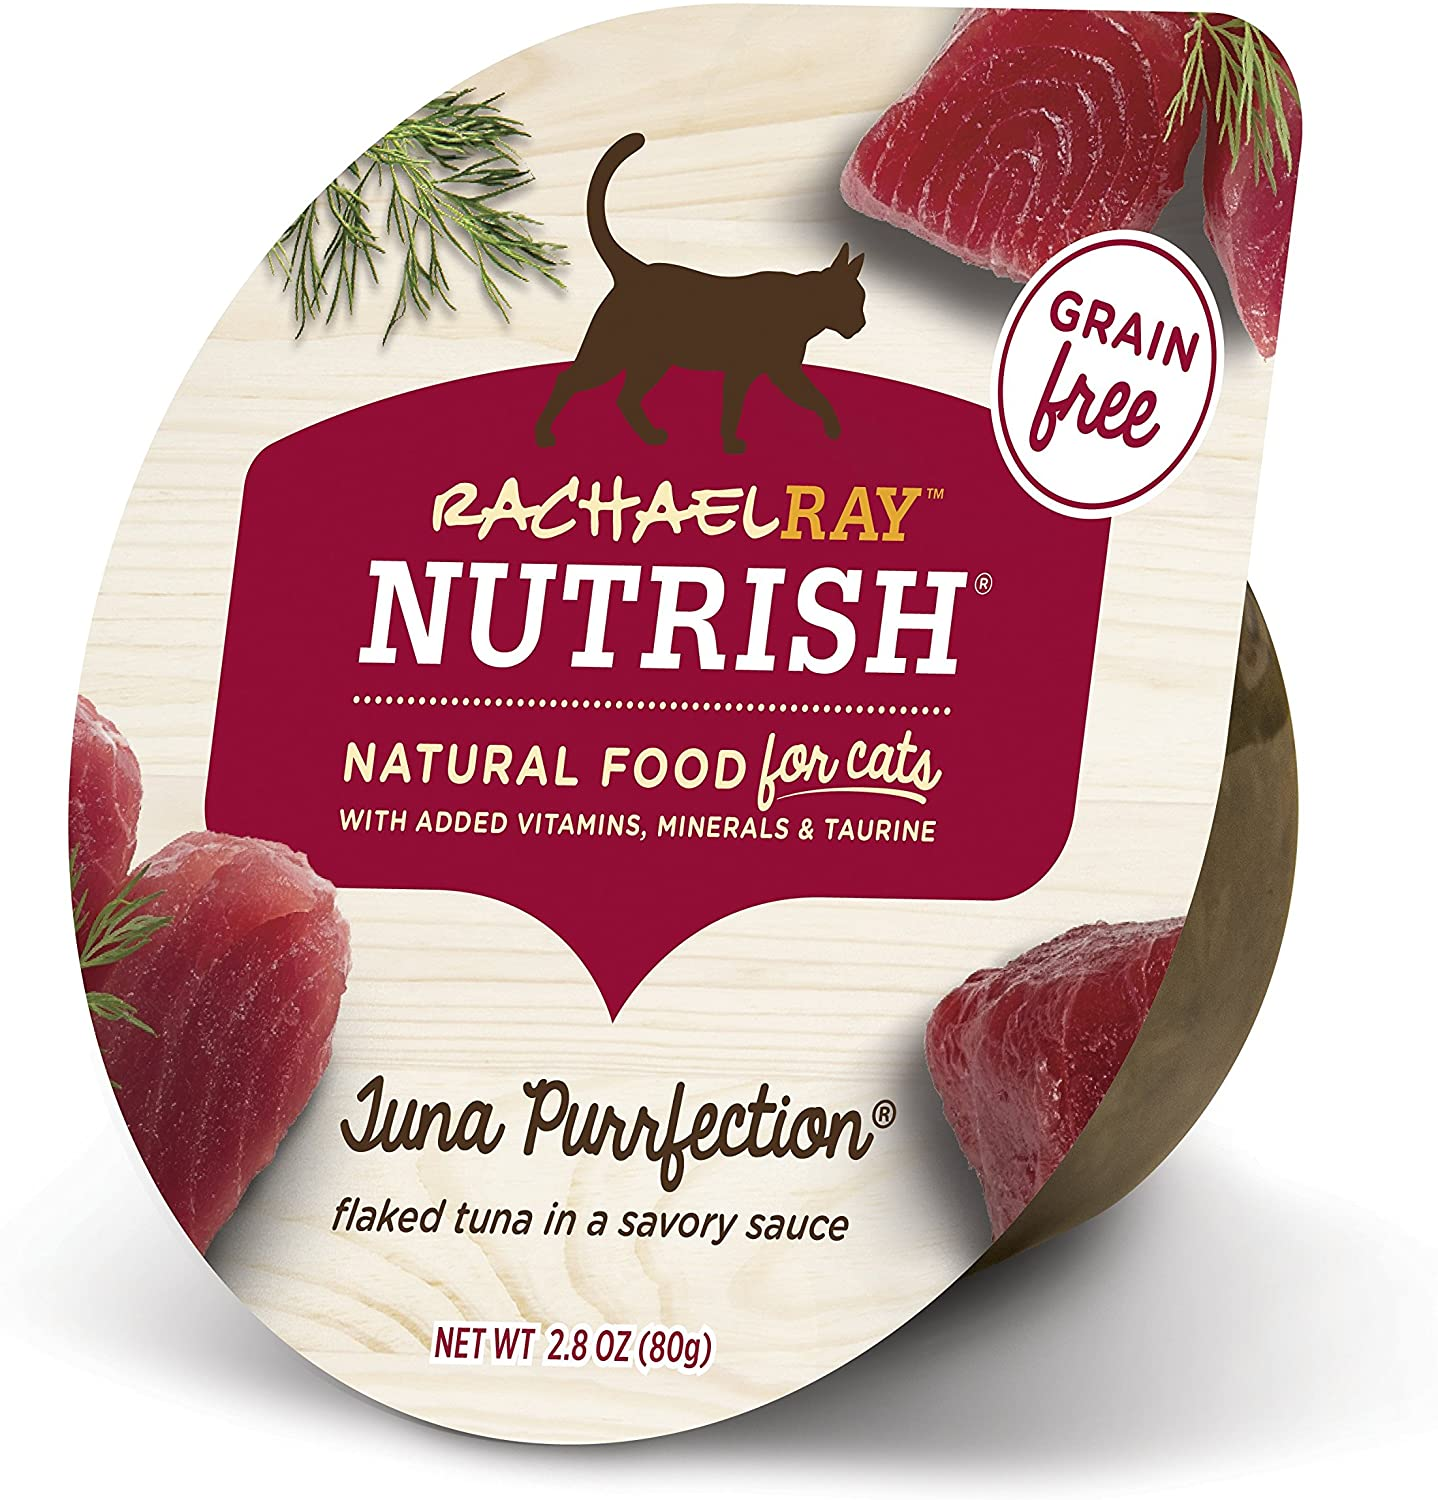 Nutrish Tuna Purrfection